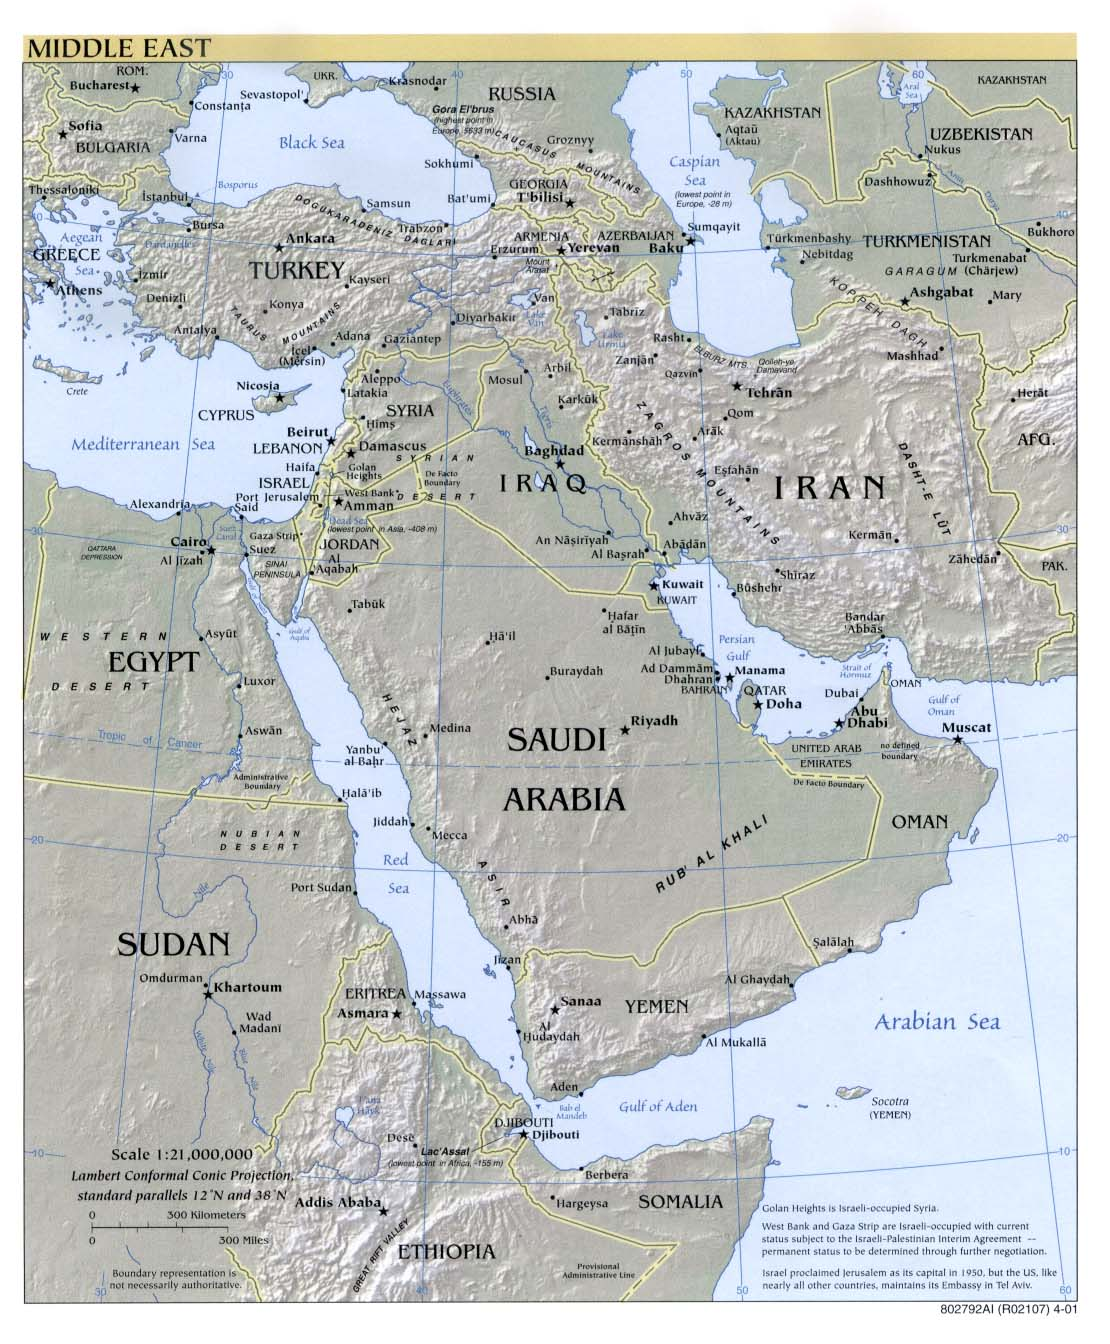 Middle East physical map 2001